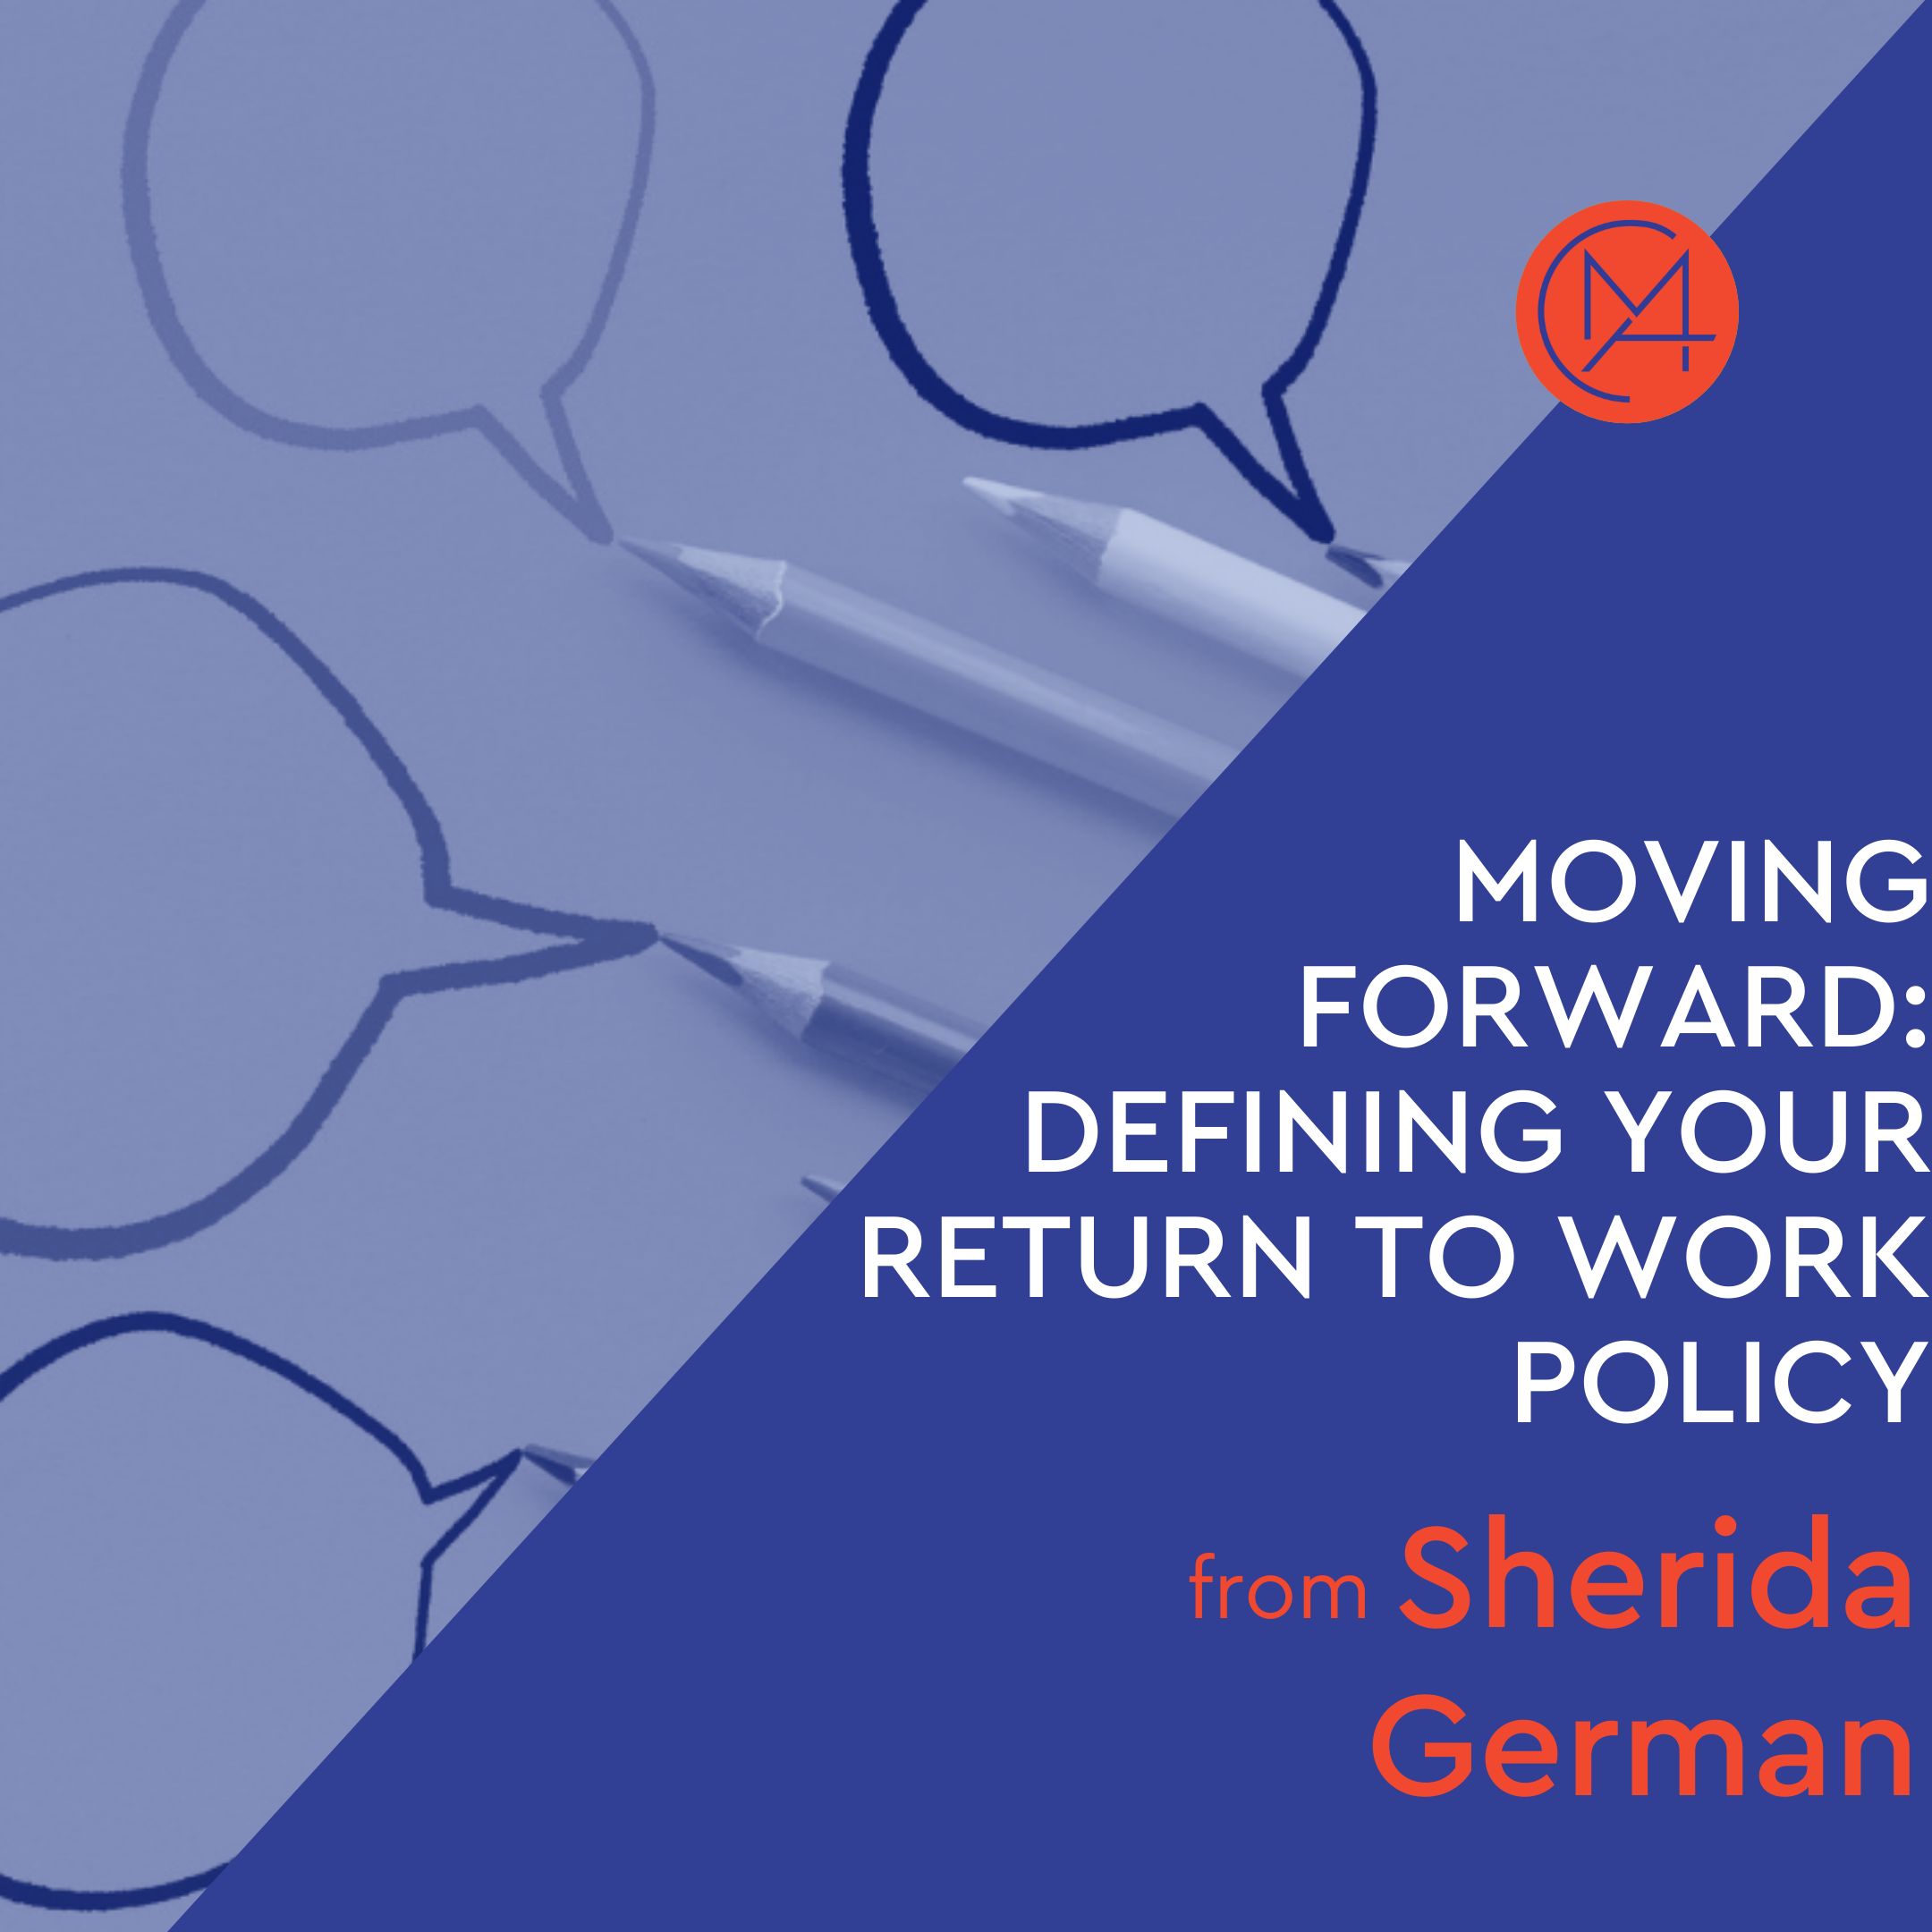 Moving Forward at Work: Defining your Return to Work Policy